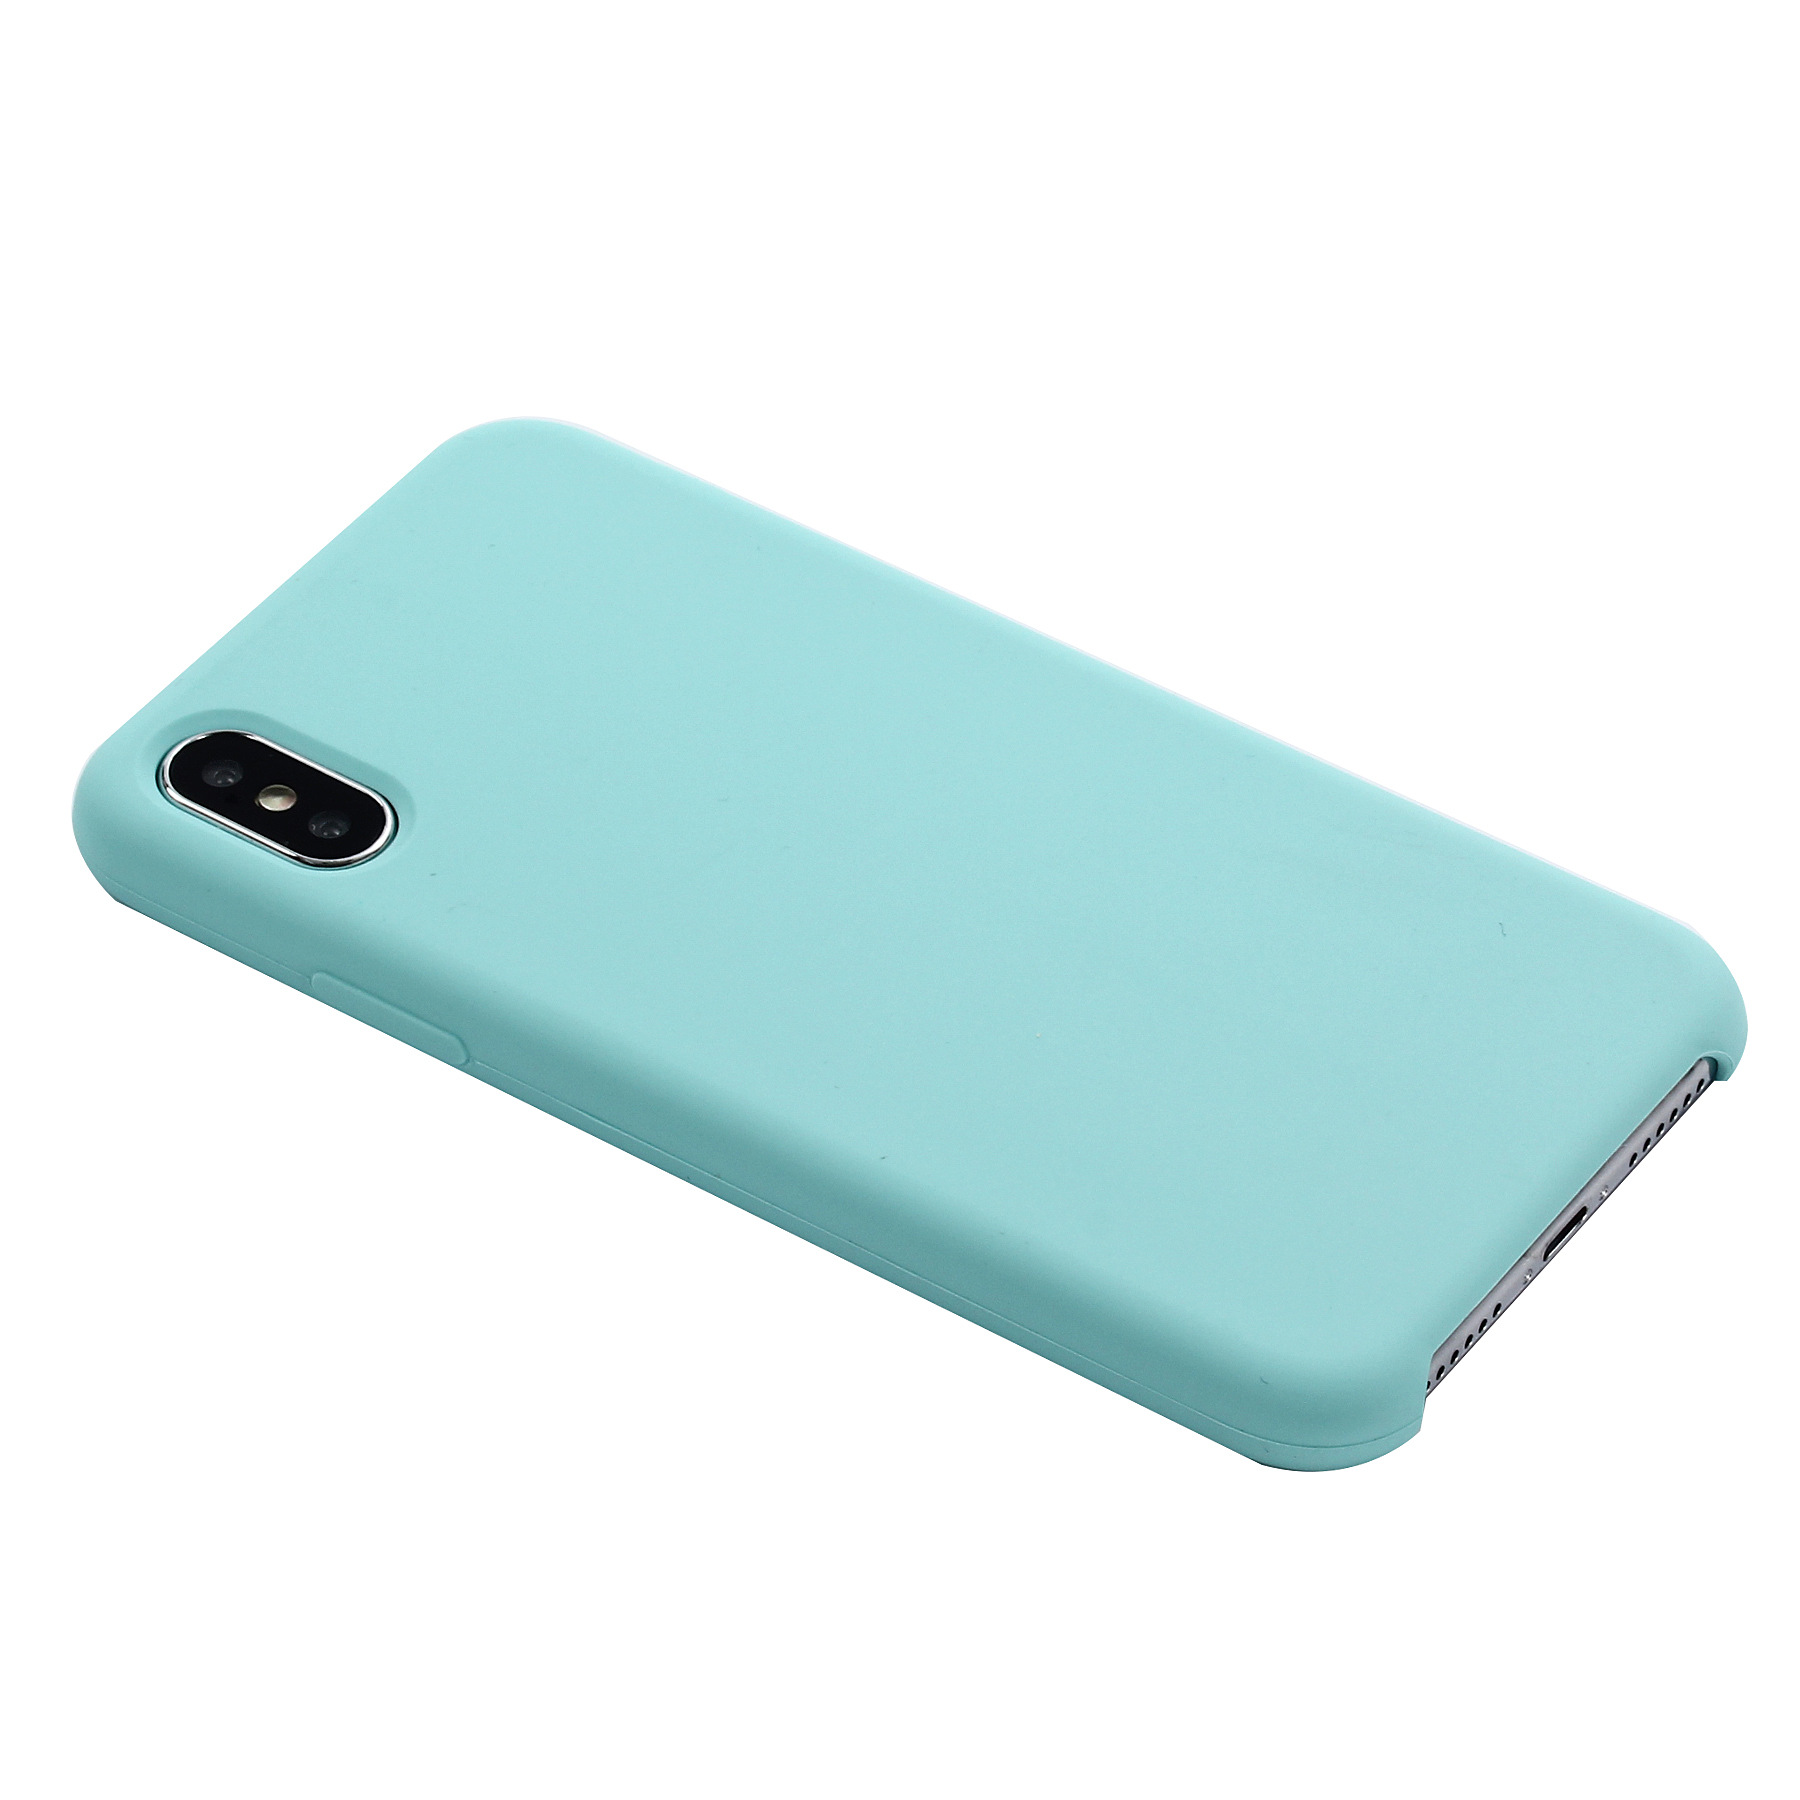 Luxo original microfibra silicone líquido silicone gel phone case para iphone 6 7 8 plus com logotipo